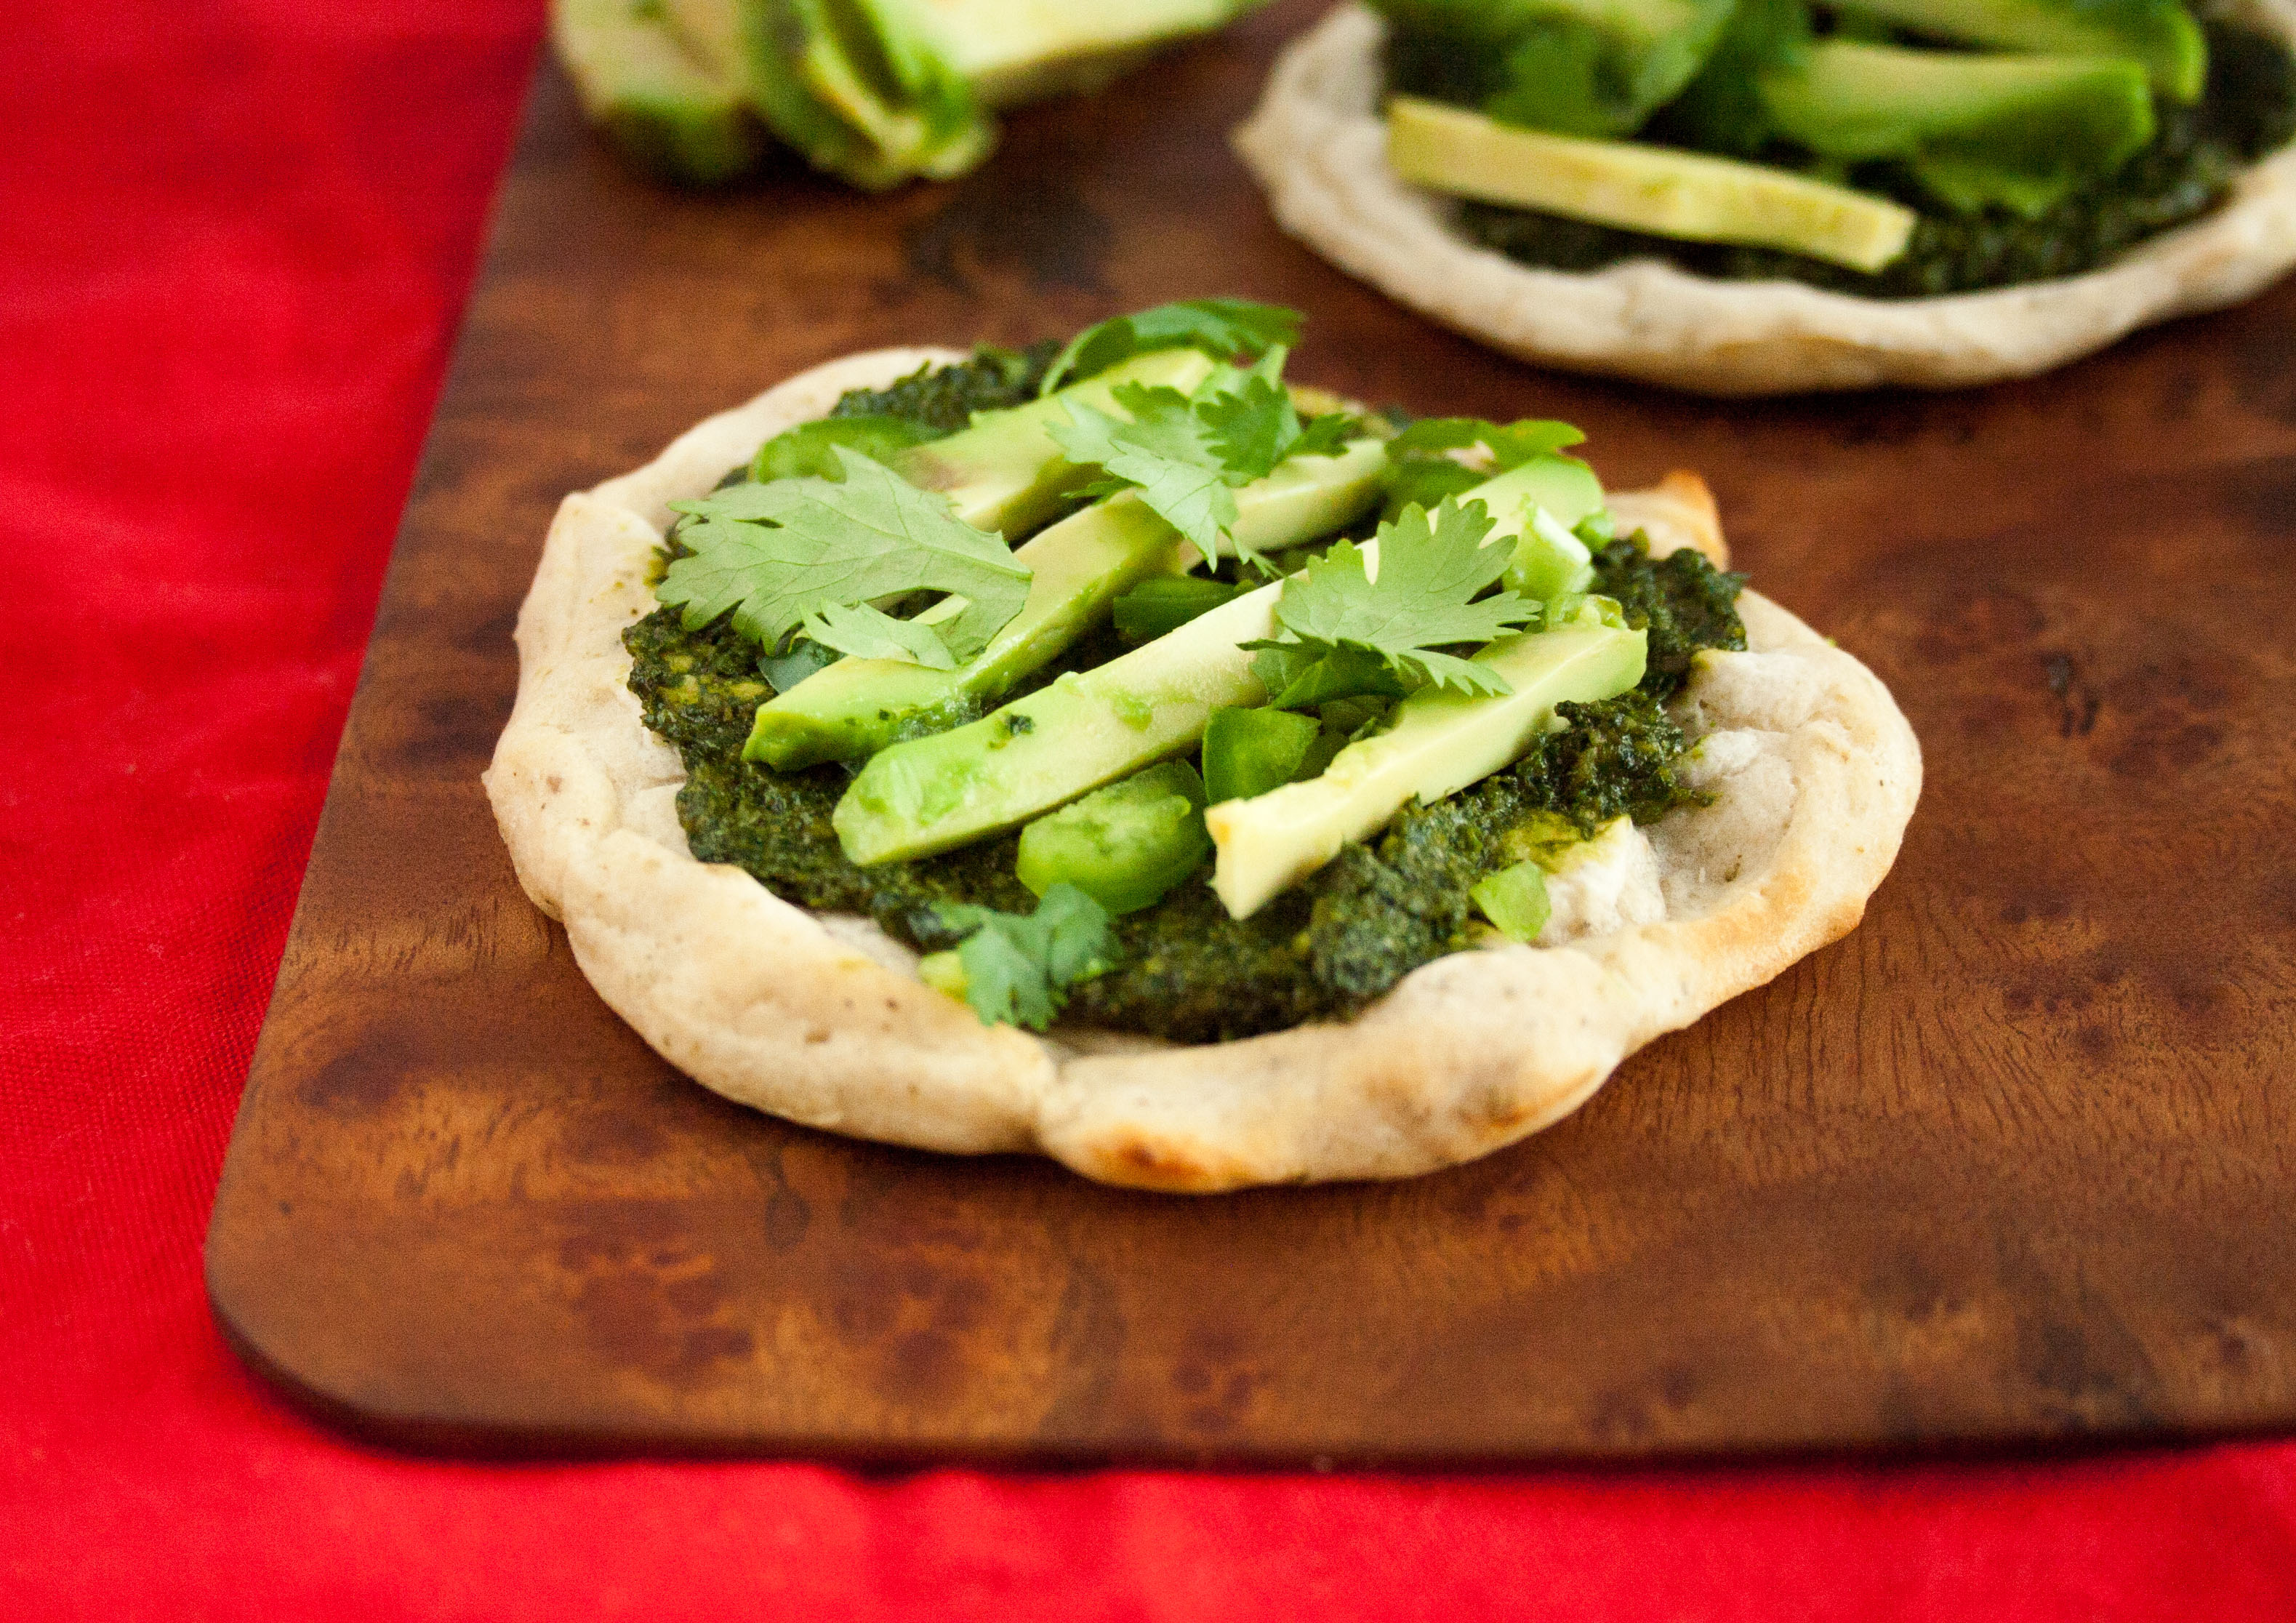 Mini Pizzas with Cilantro Pesto and Avocado